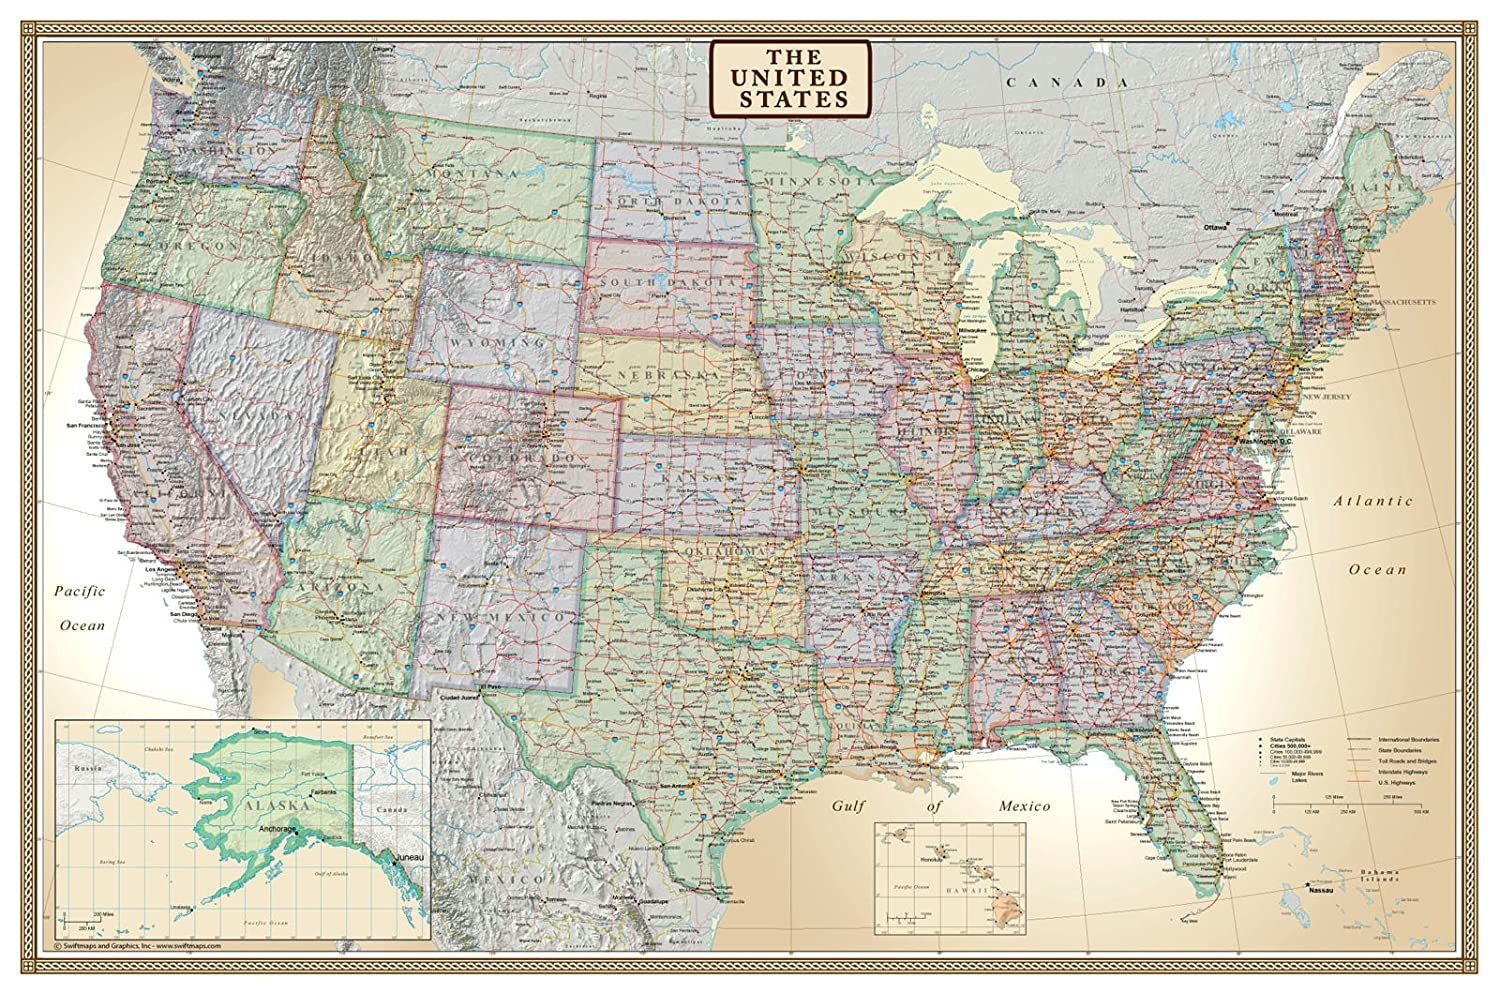 24x36 United States, USA US Executive Wall Map Poster Mural (24x36 on camera poster, wisconsin poster, team usa poster, south dakota poster, usa ww1 propaganda posters, dinosaurs poster, colorado poster, georgia poster, usa maps with cities and highways, tennessee poster, maryland poster, kentucky poster, under the sea poster, usa poster for classroom, arizona poster, north dakota poster, bike poster, florida poster, vermont poster, new jersey poster,